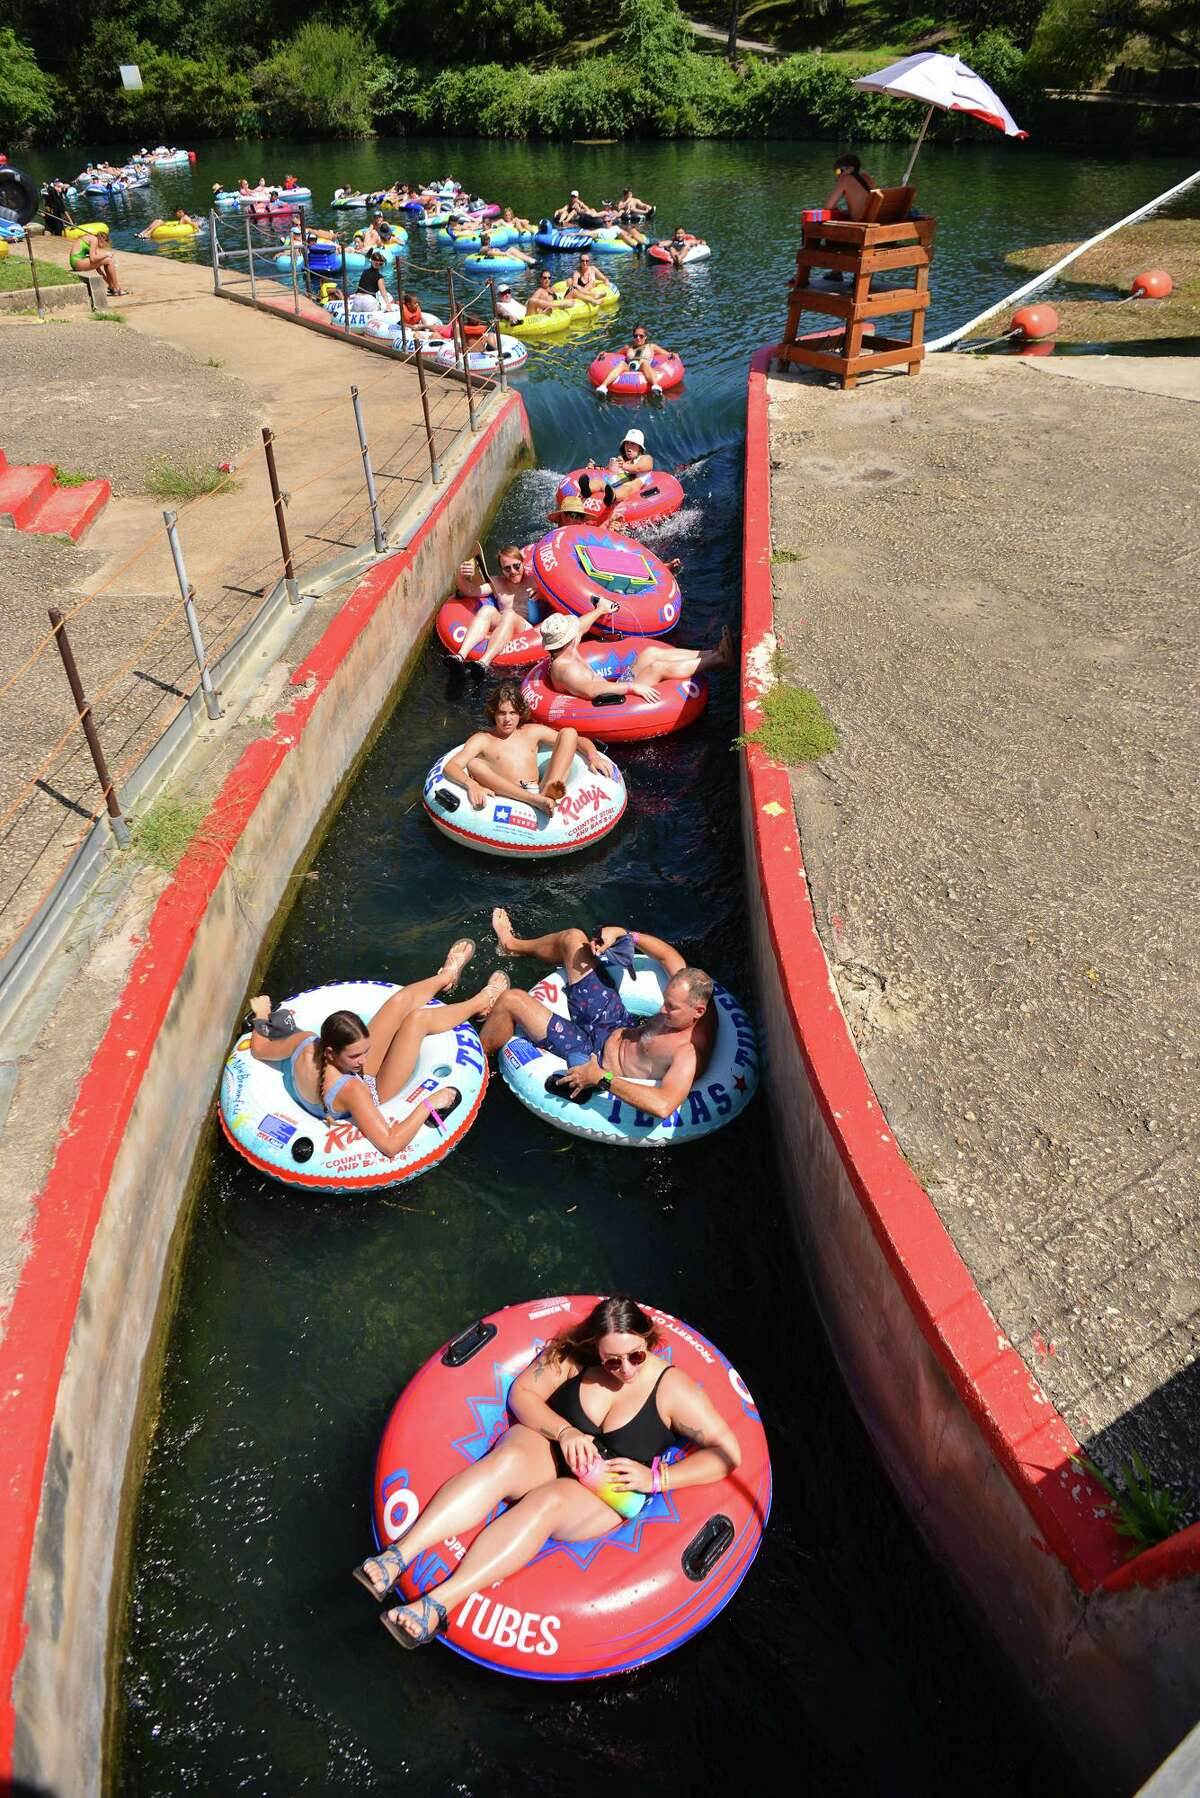 Tubers jam the tube chute as crowds converged on the Comal River in New Braunfels on Sunday during the summer season's last big weekend.